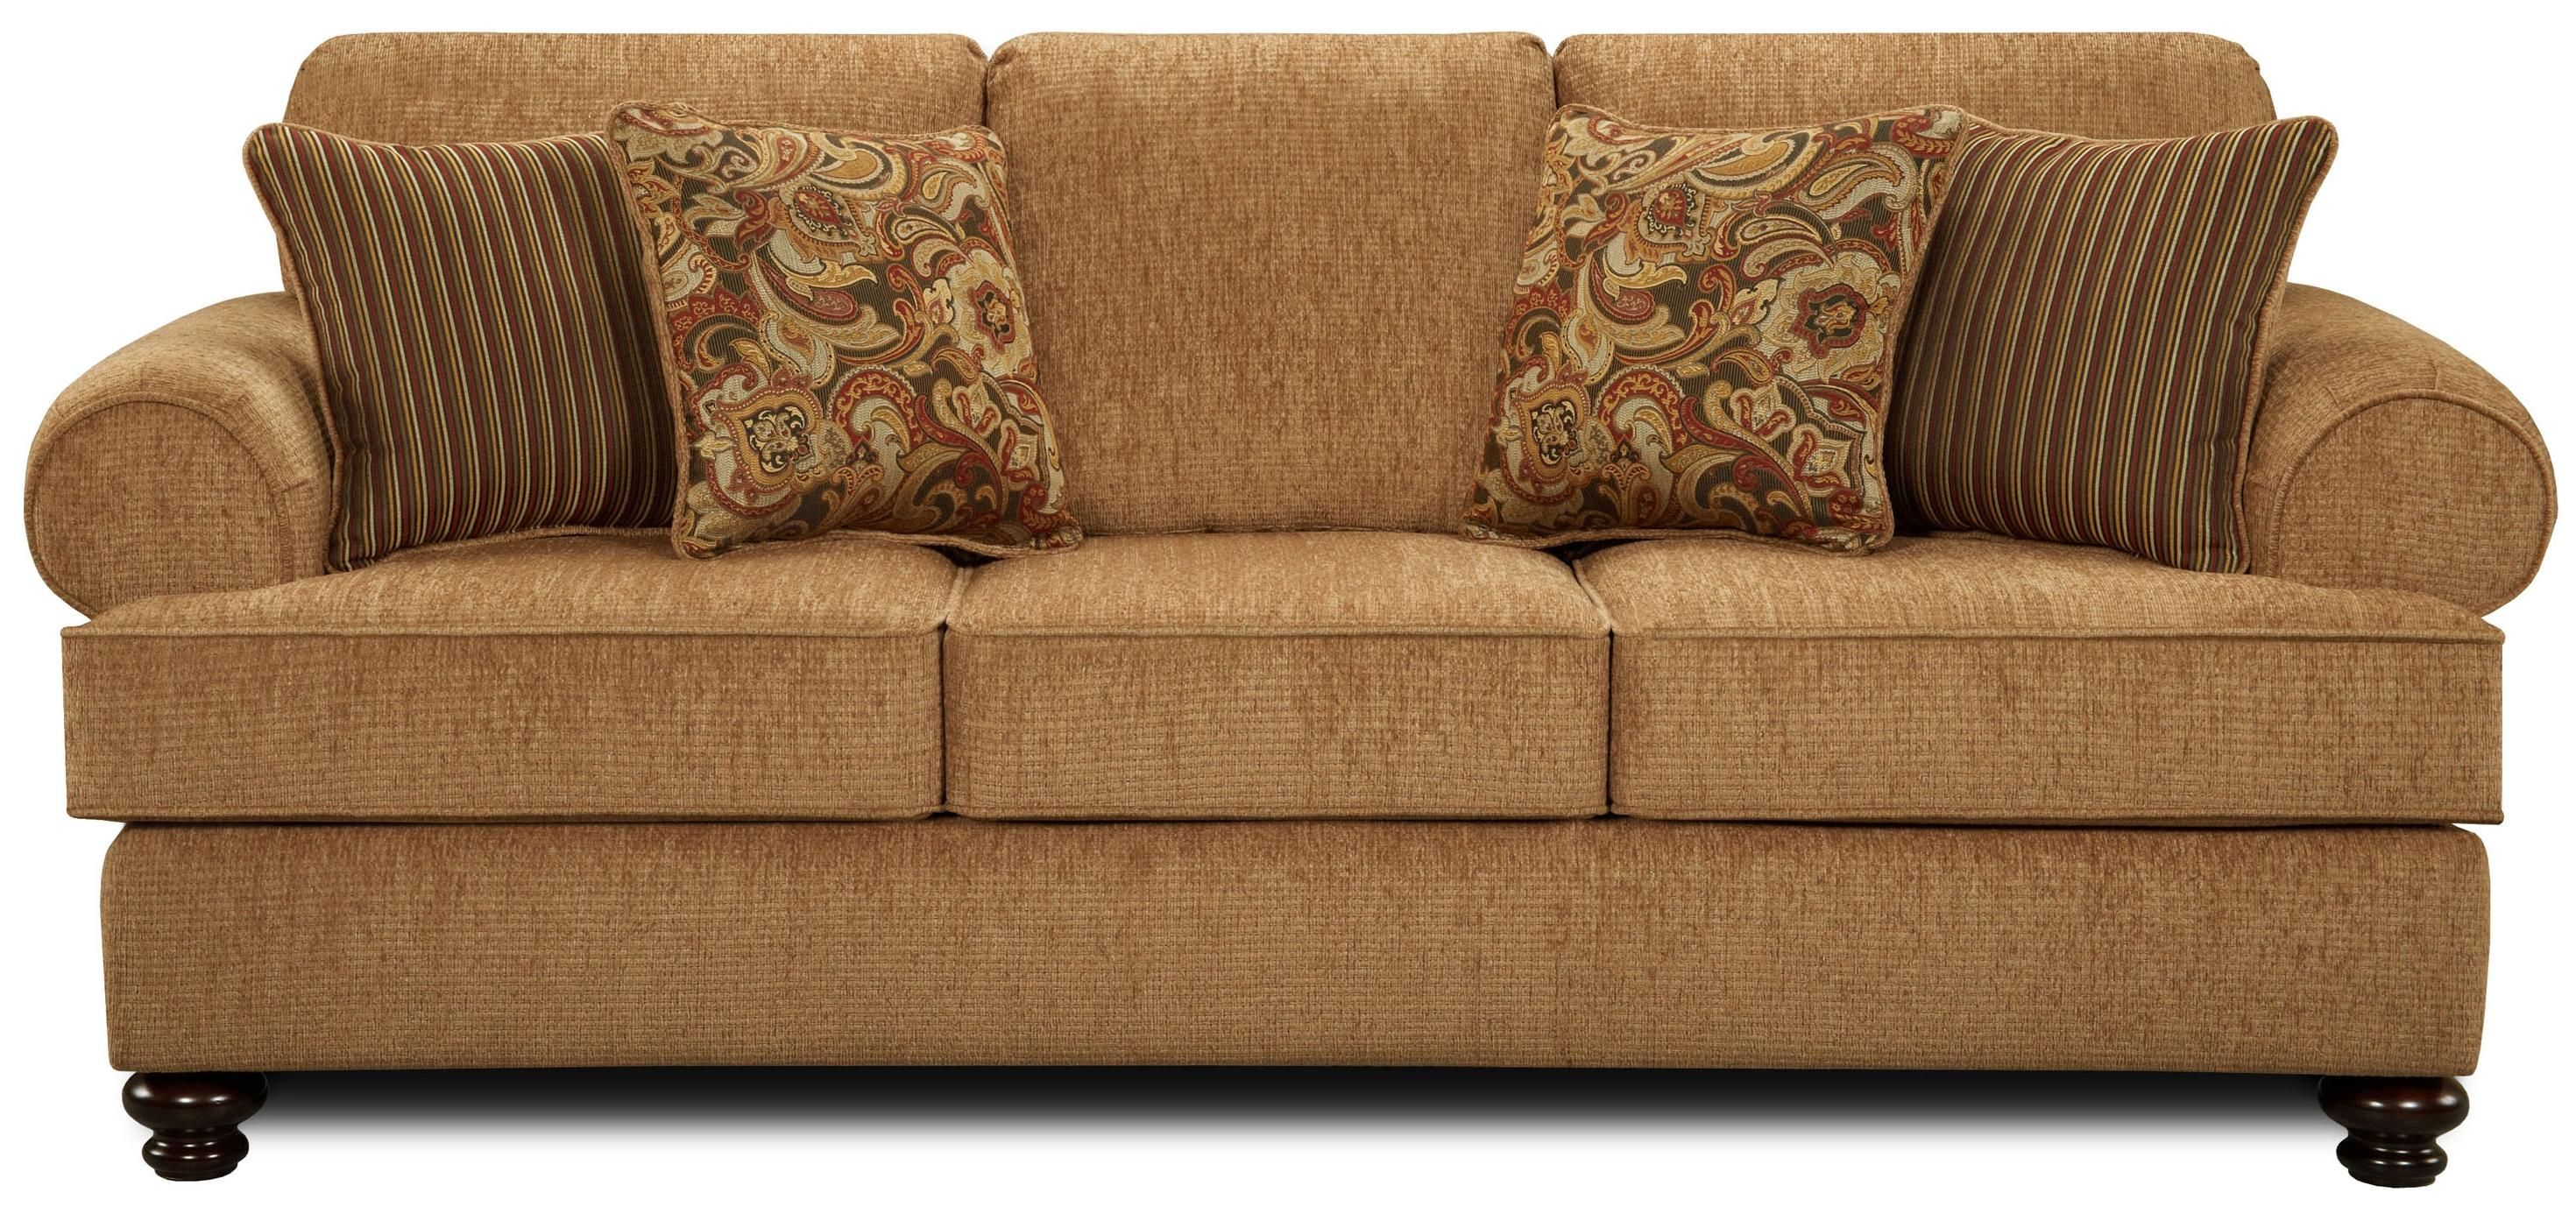 Cheap Small Couches Sale